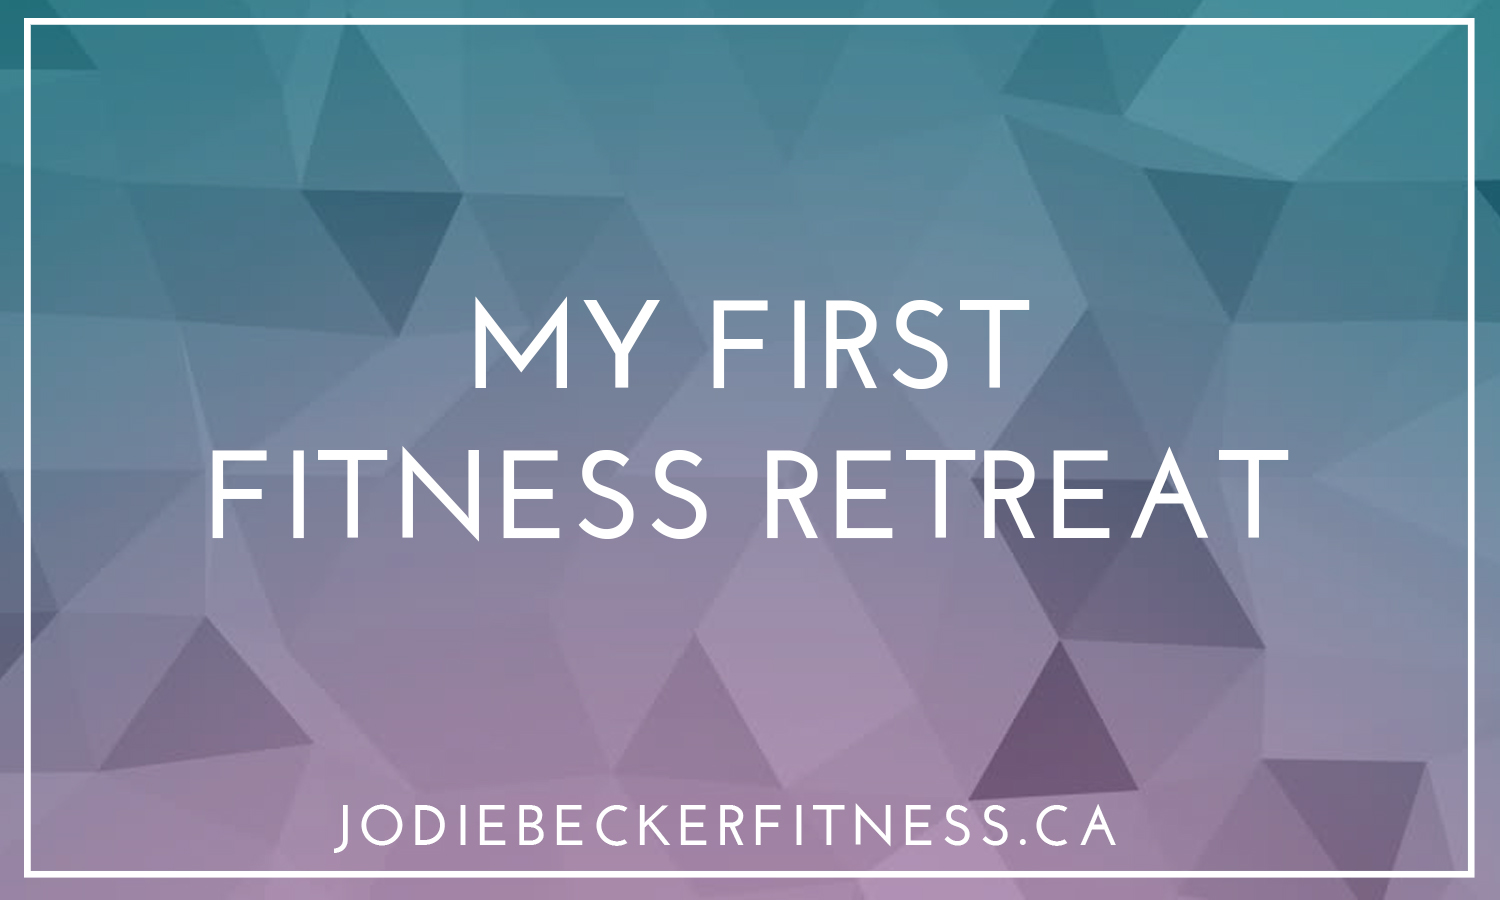 MY FIRST FITNESS RETREAT